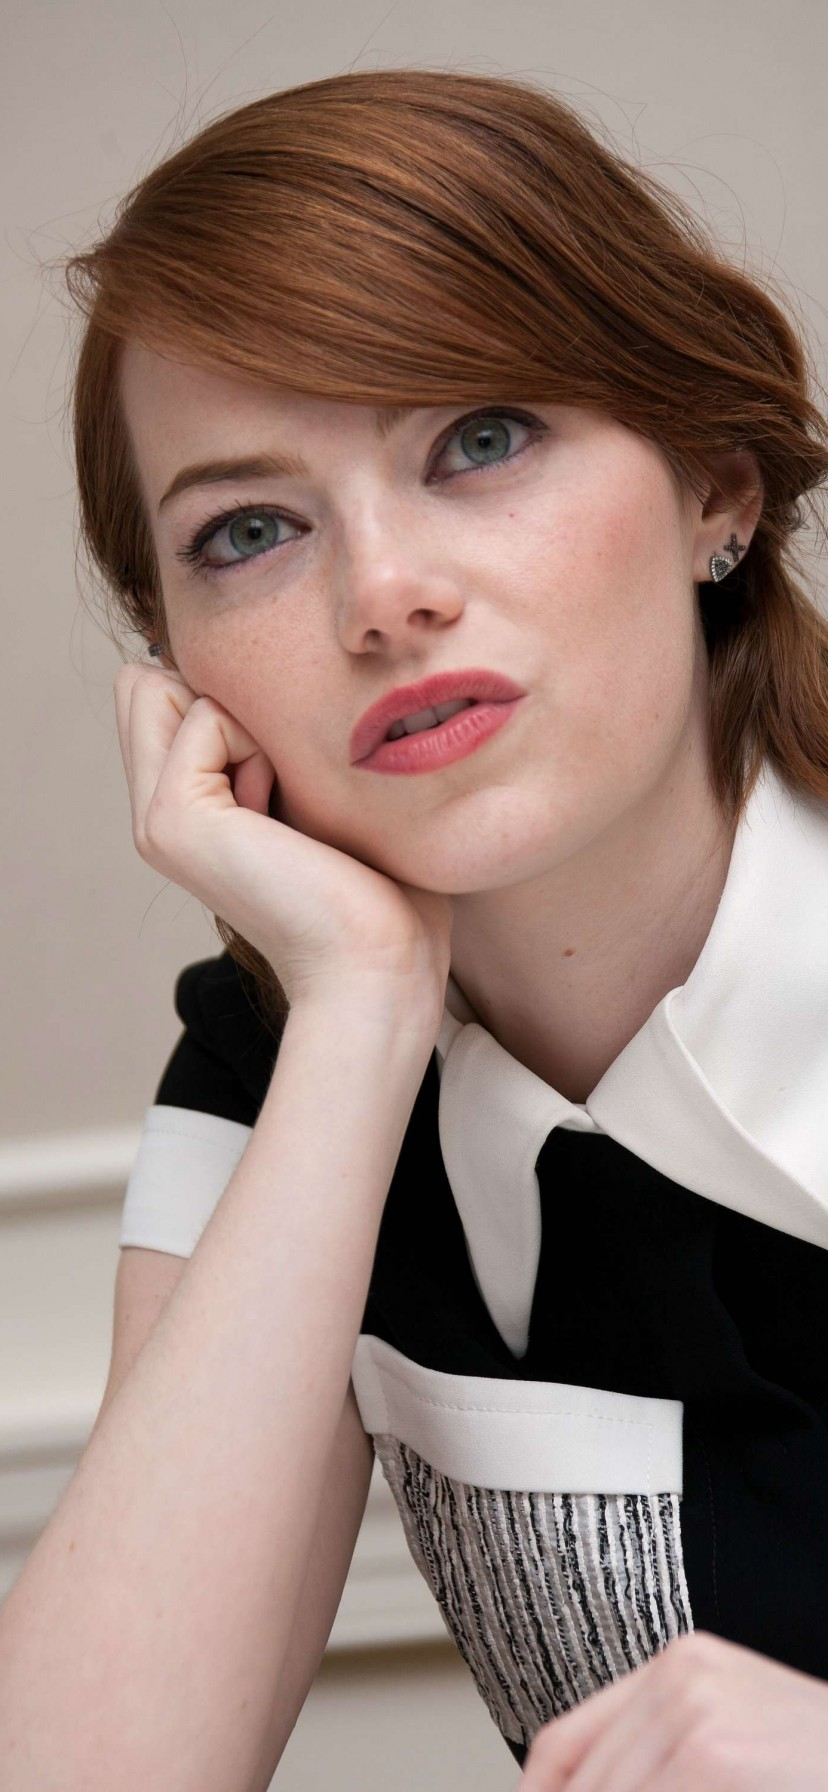 Emma Stone iPhone XR Wallpaper Download